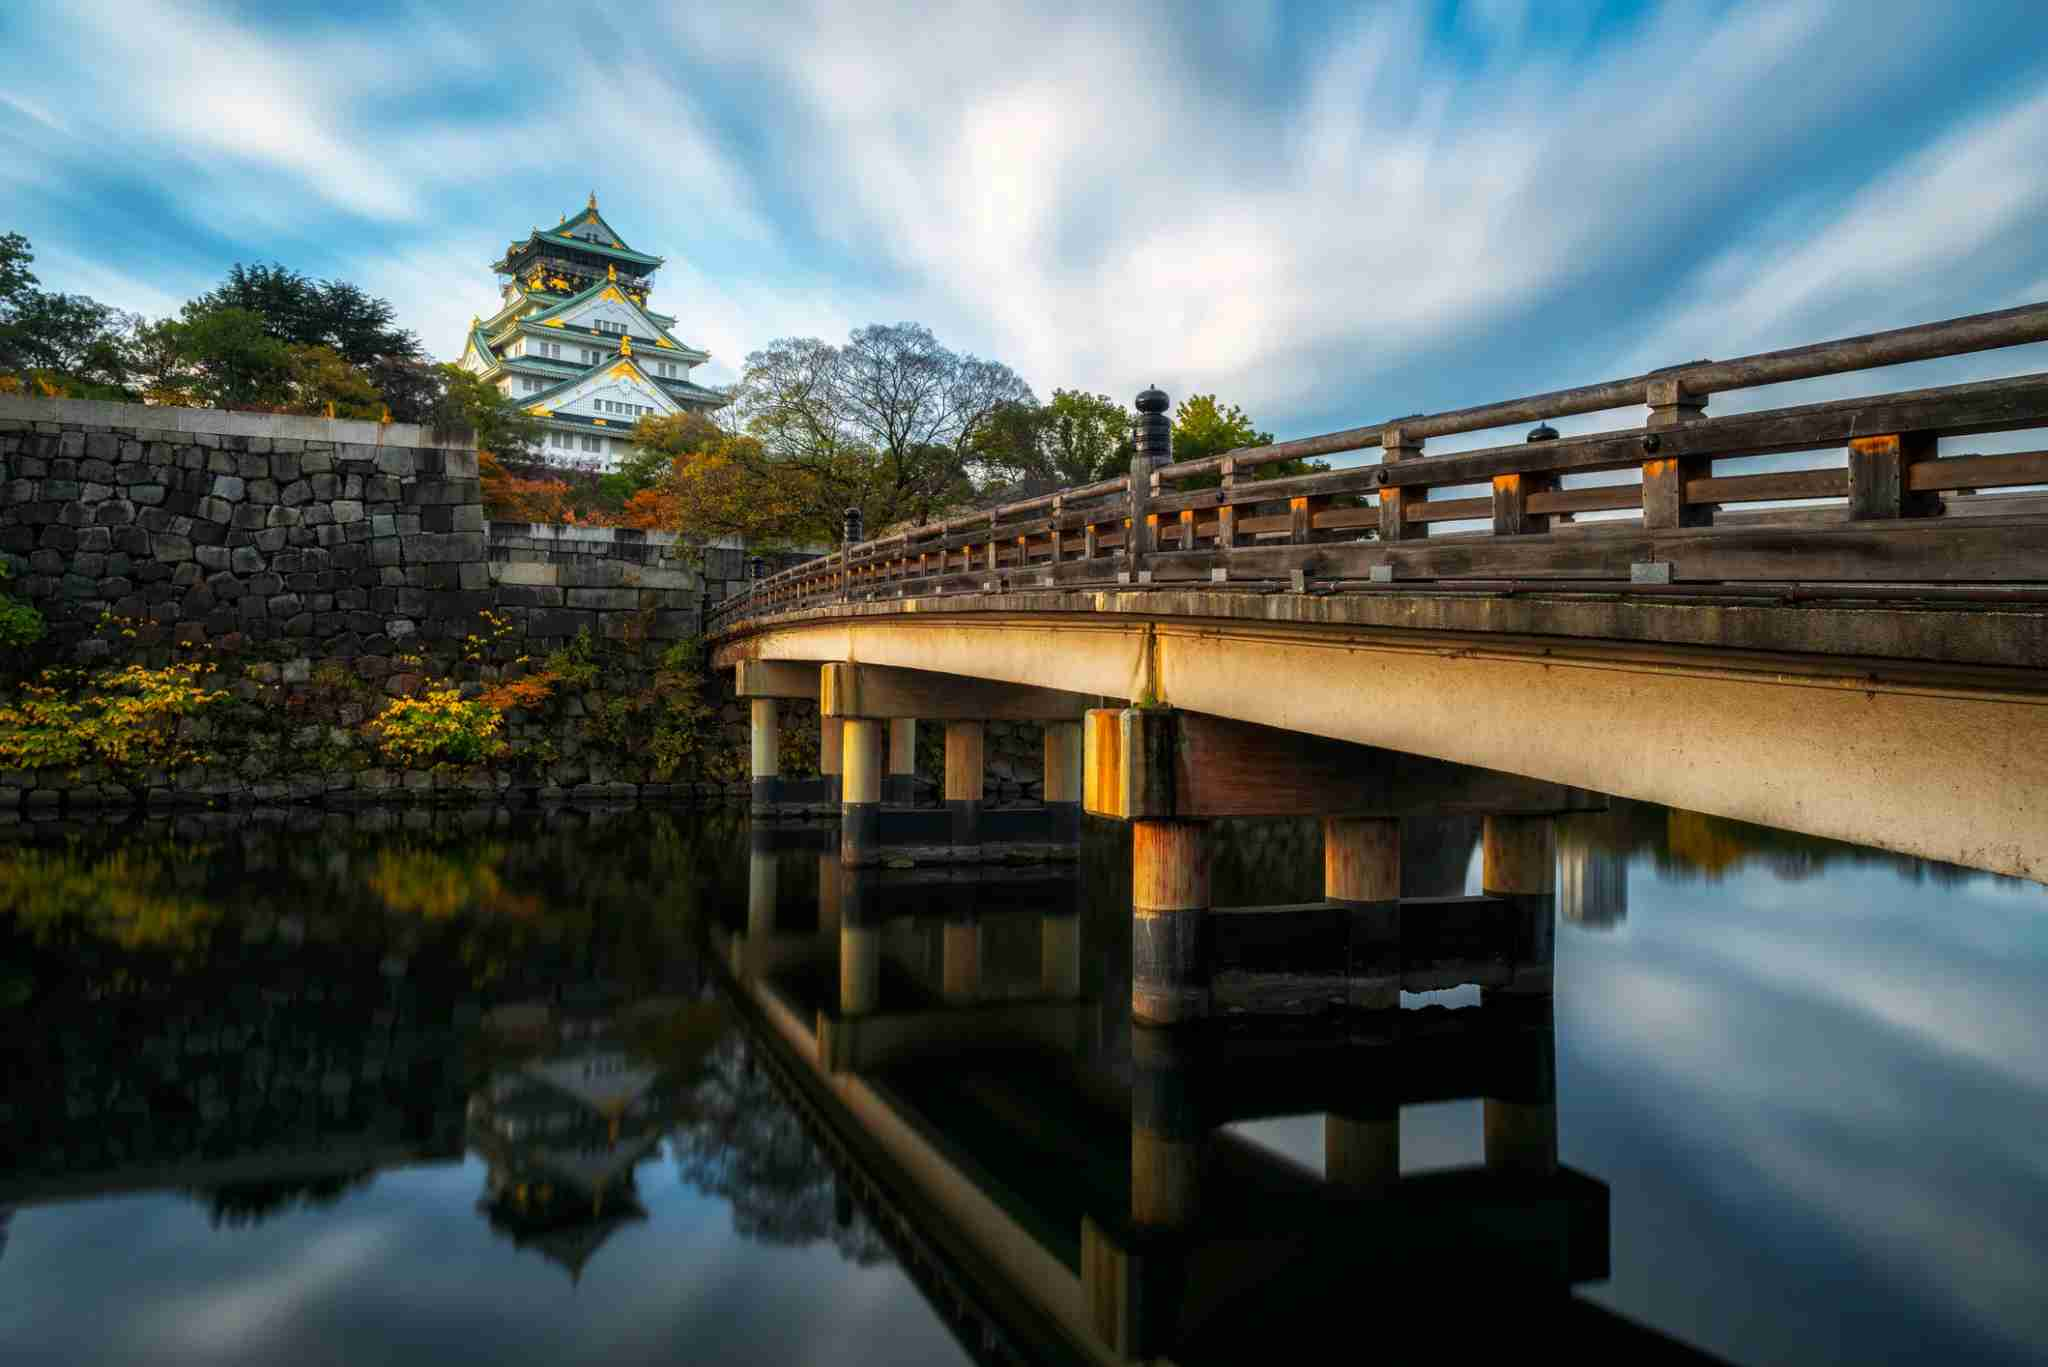 Osaka is a beautiful place to visit all year long. (Photo by 861345458 / Getty Images)